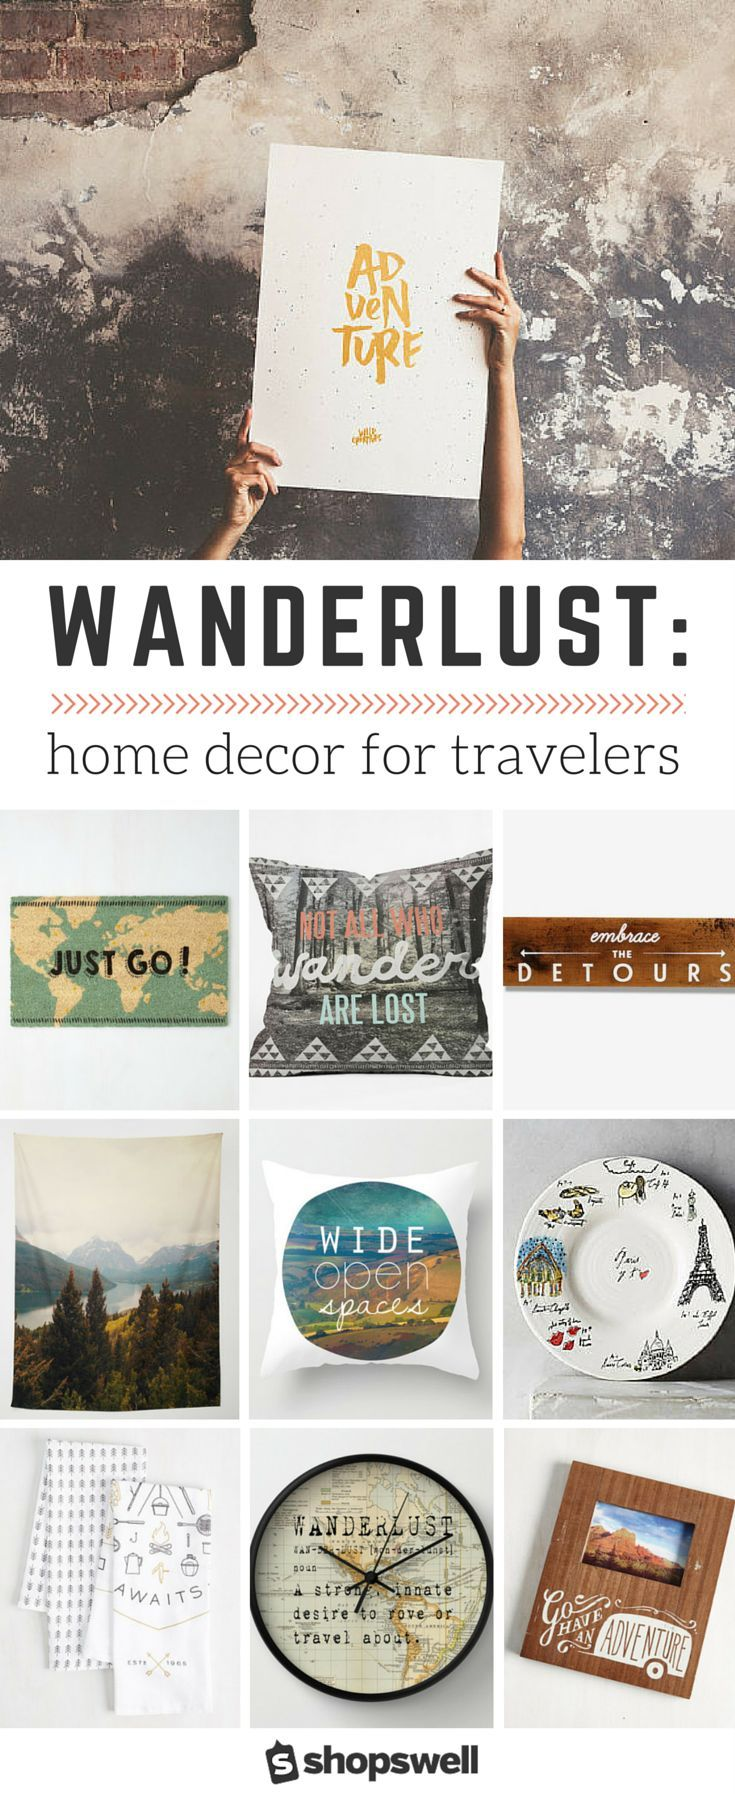 wanderlust a home decor collection for travelers - Travel Home Decor